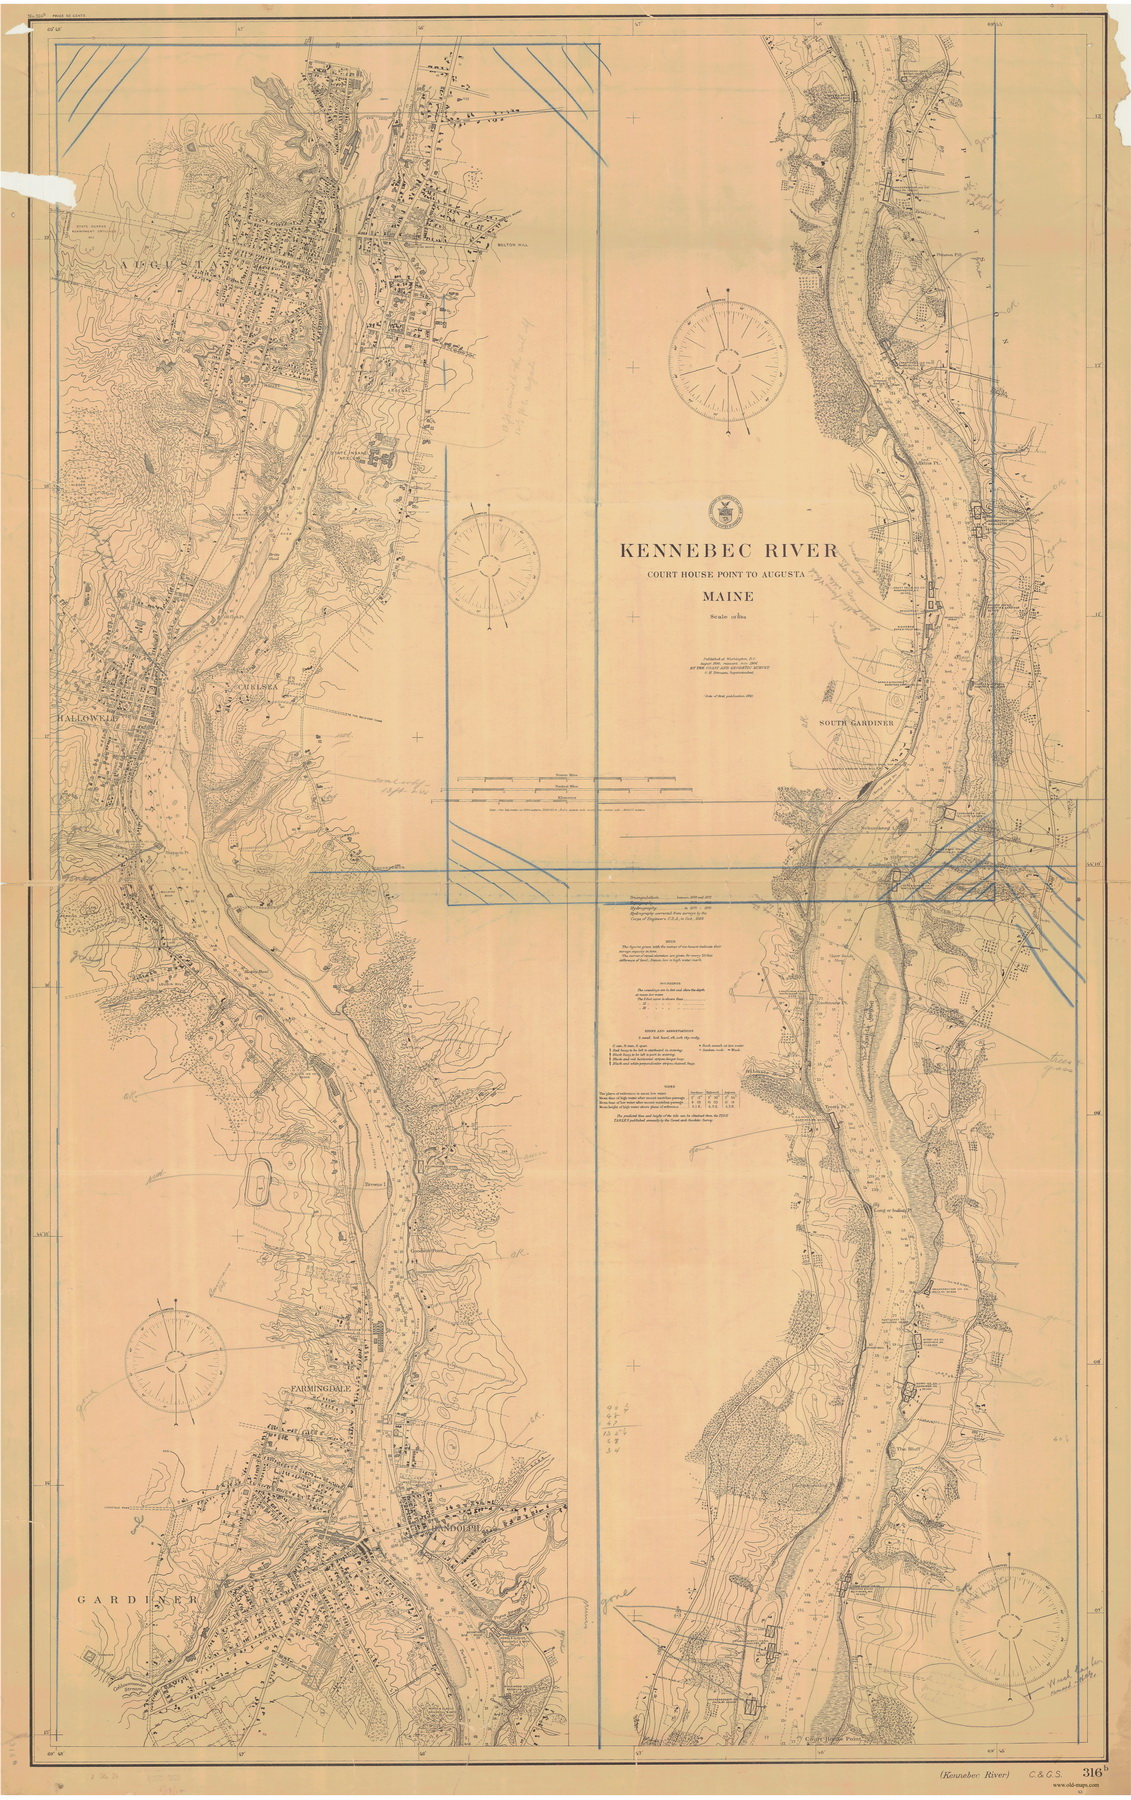 Kennebec River Courthouse Point to Augusta 1898 Old Map Nautical